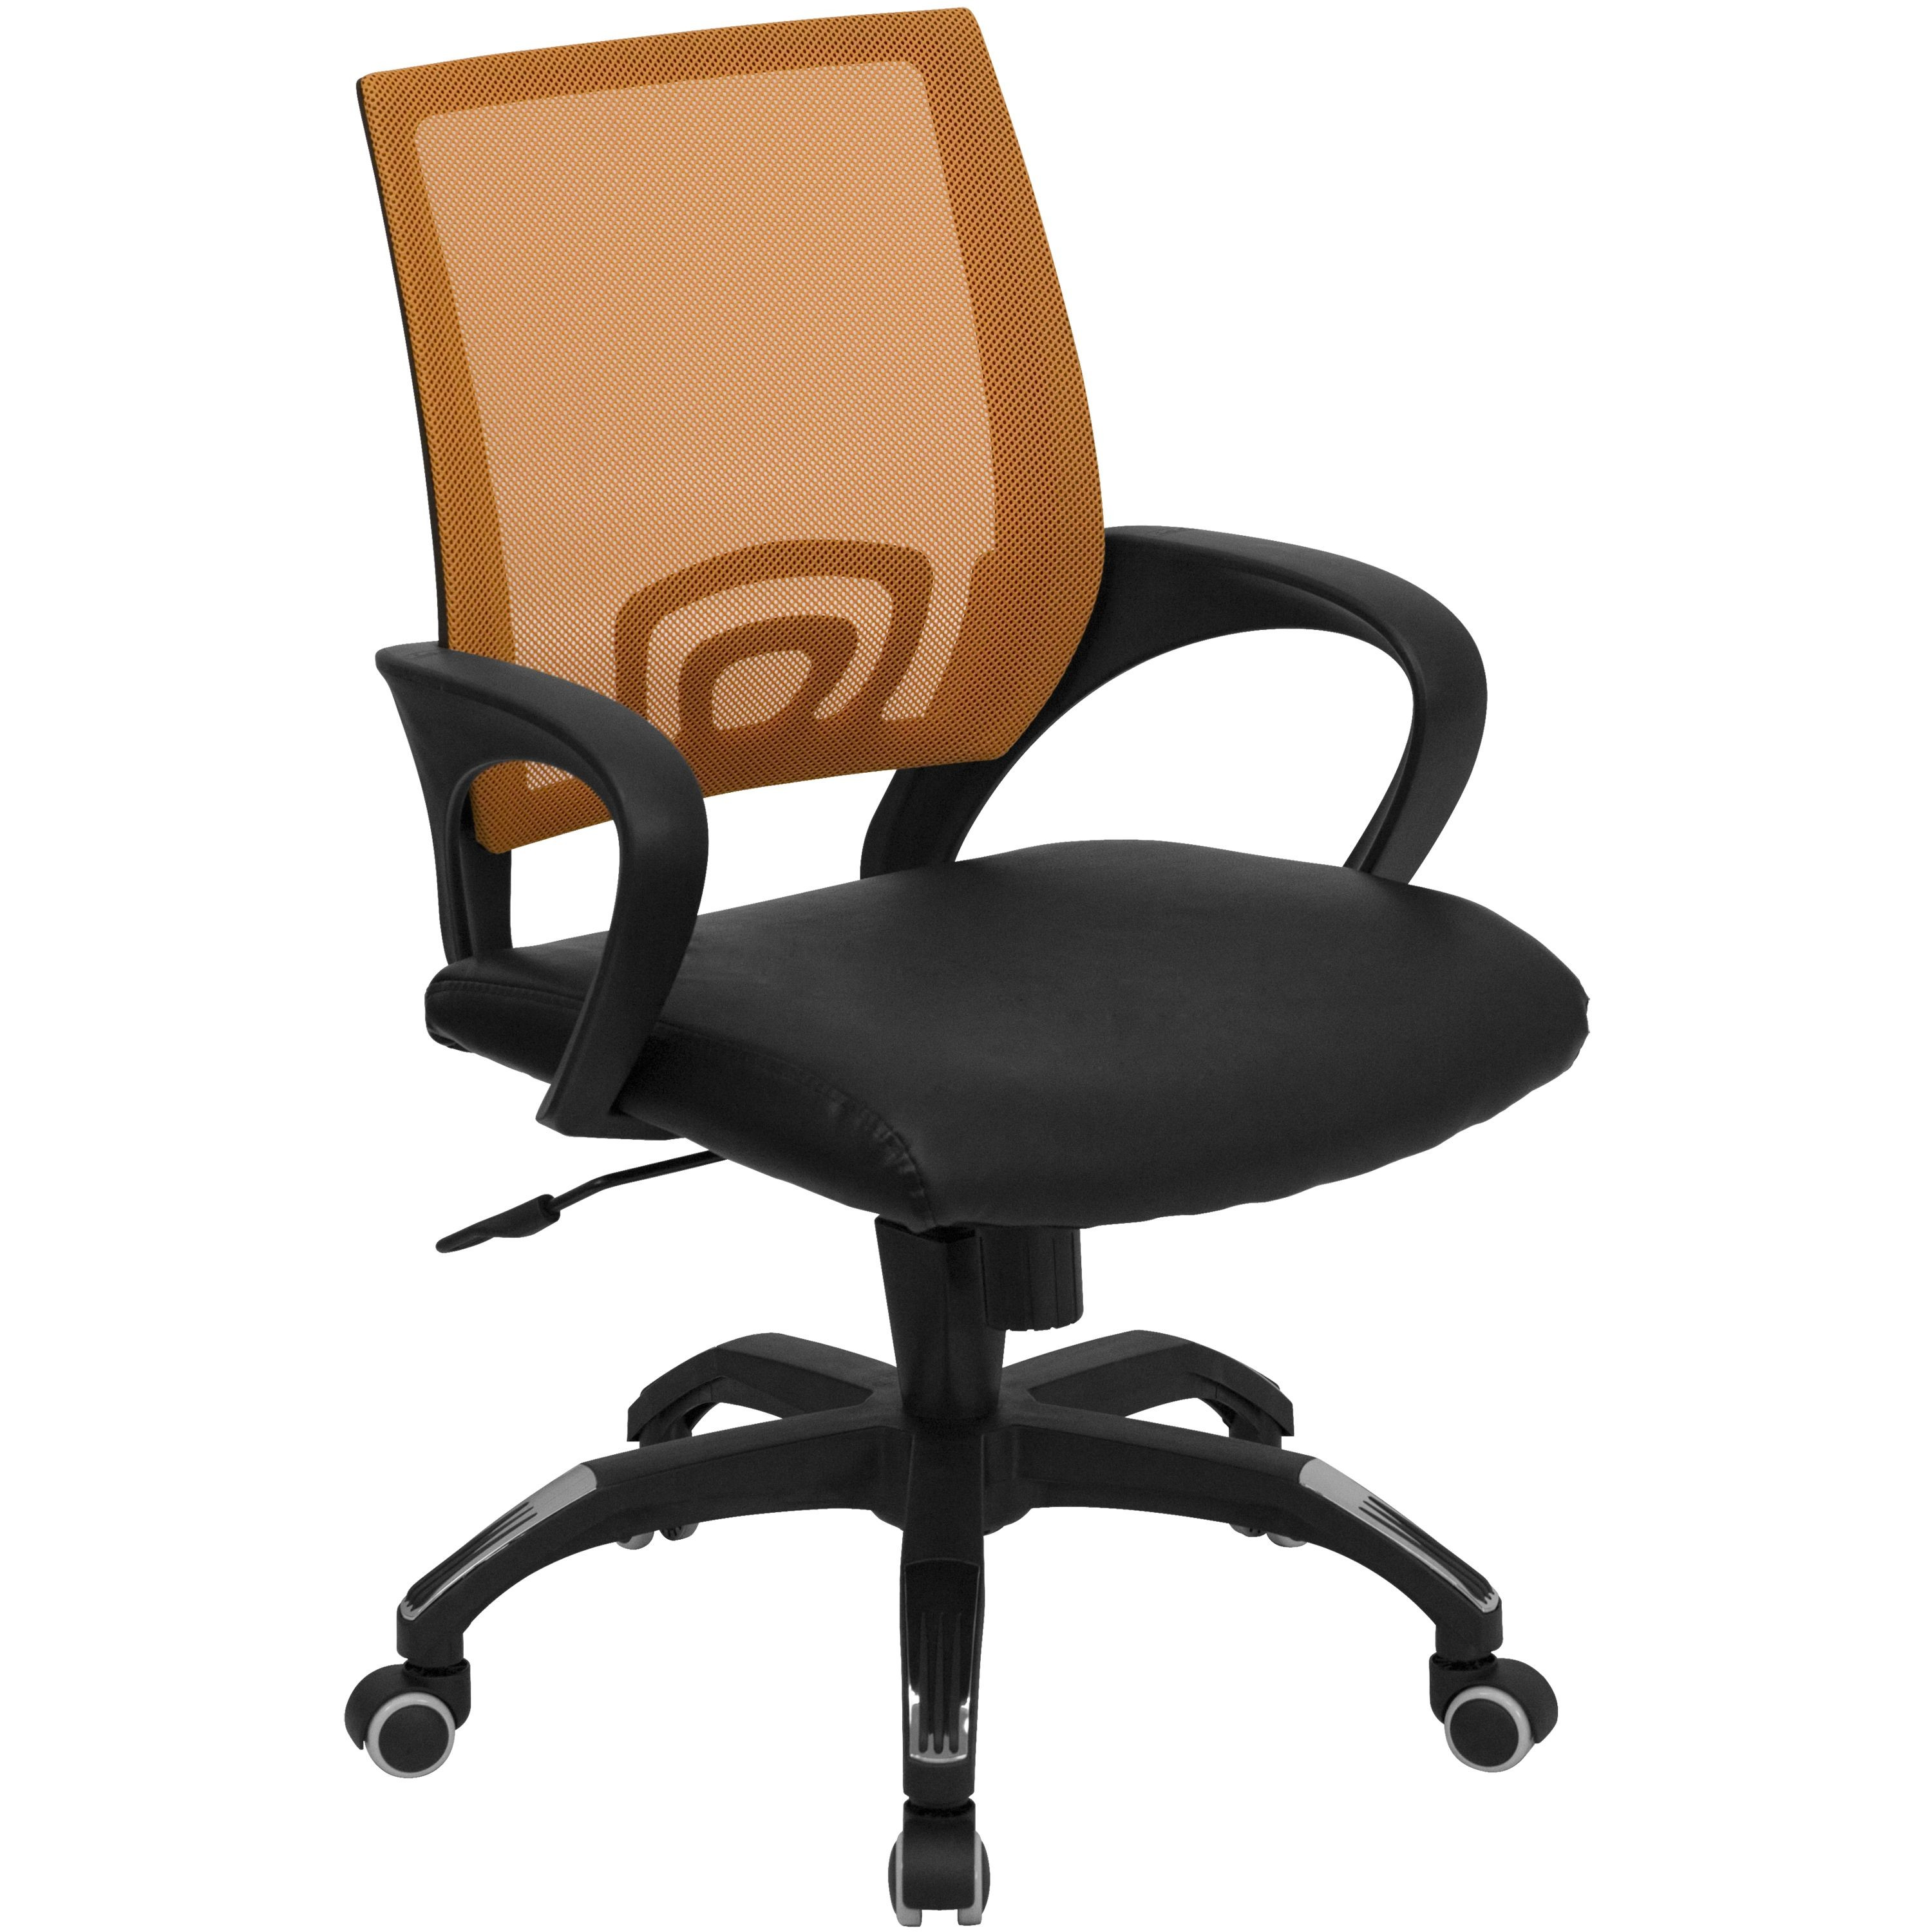 Flash Furniture CP-B176A01-ORANGE-GG Orange Mesh Office Chair with Black Leather Seat